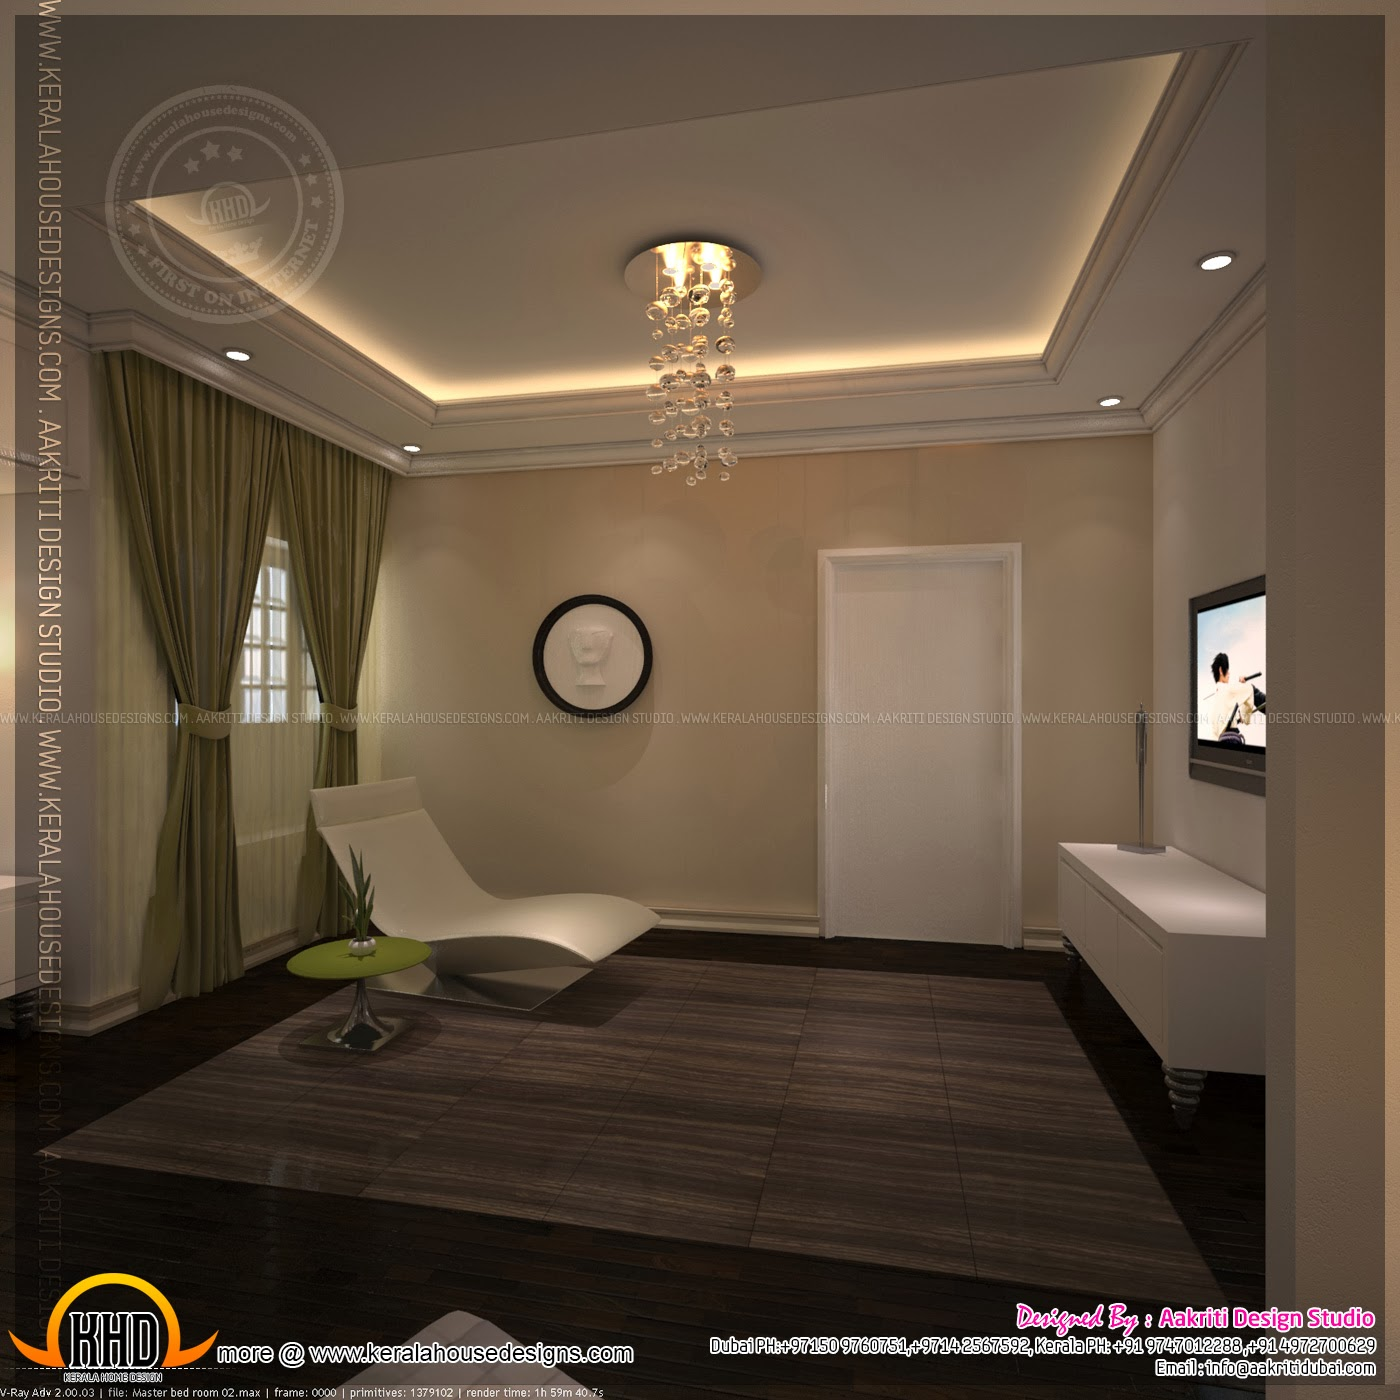 Master bedroom and bathroom interior design kerala home for Bedroom interior design india